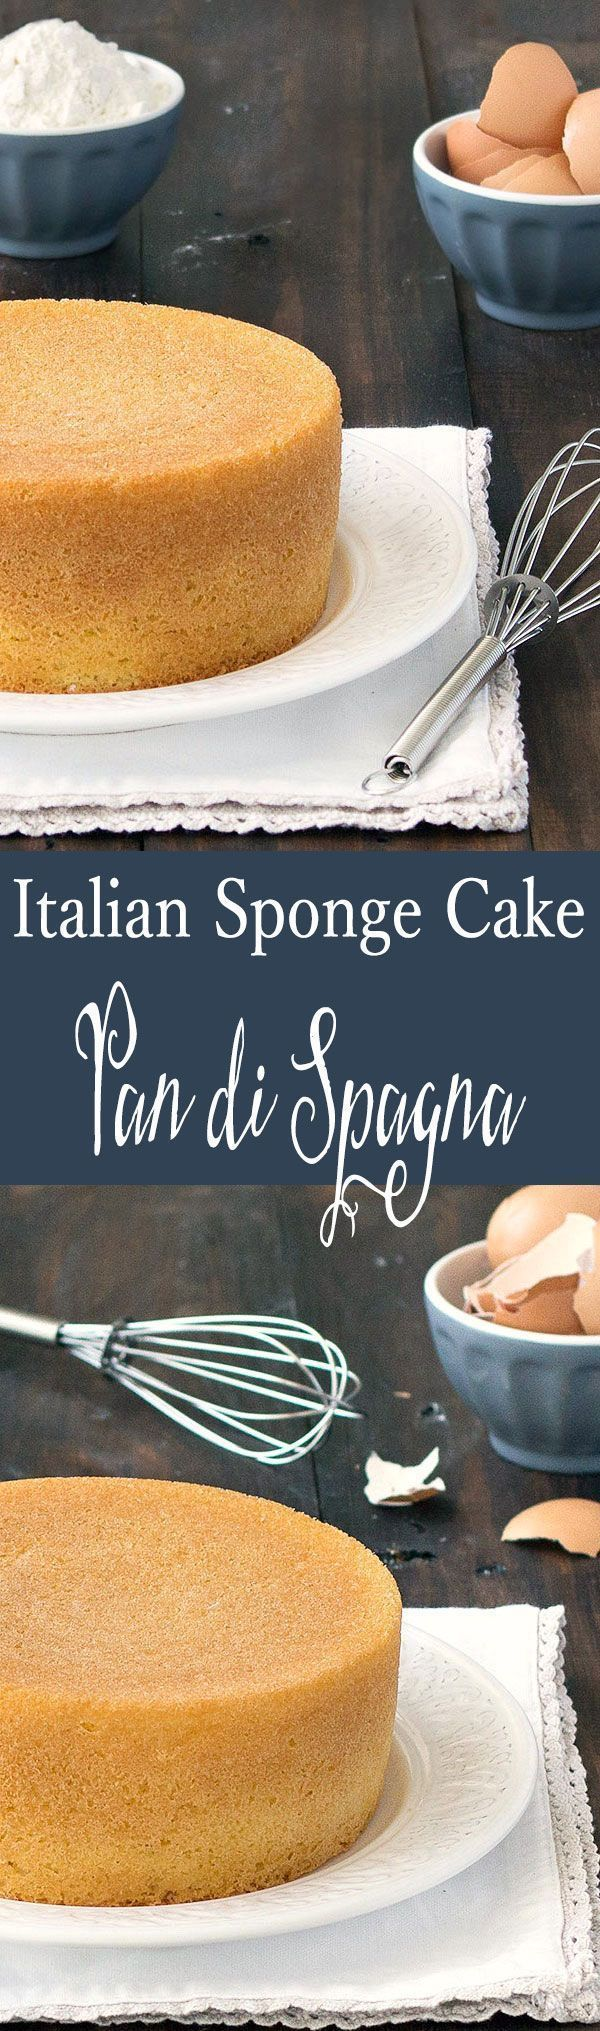 Pan di Spagna is a simple, Italian sponge cake made with only 3 ingredients: no baking powder, no butter, no oil! Its used in desserts like cassata, zuccotto, zuppa inglese and tiramisu.